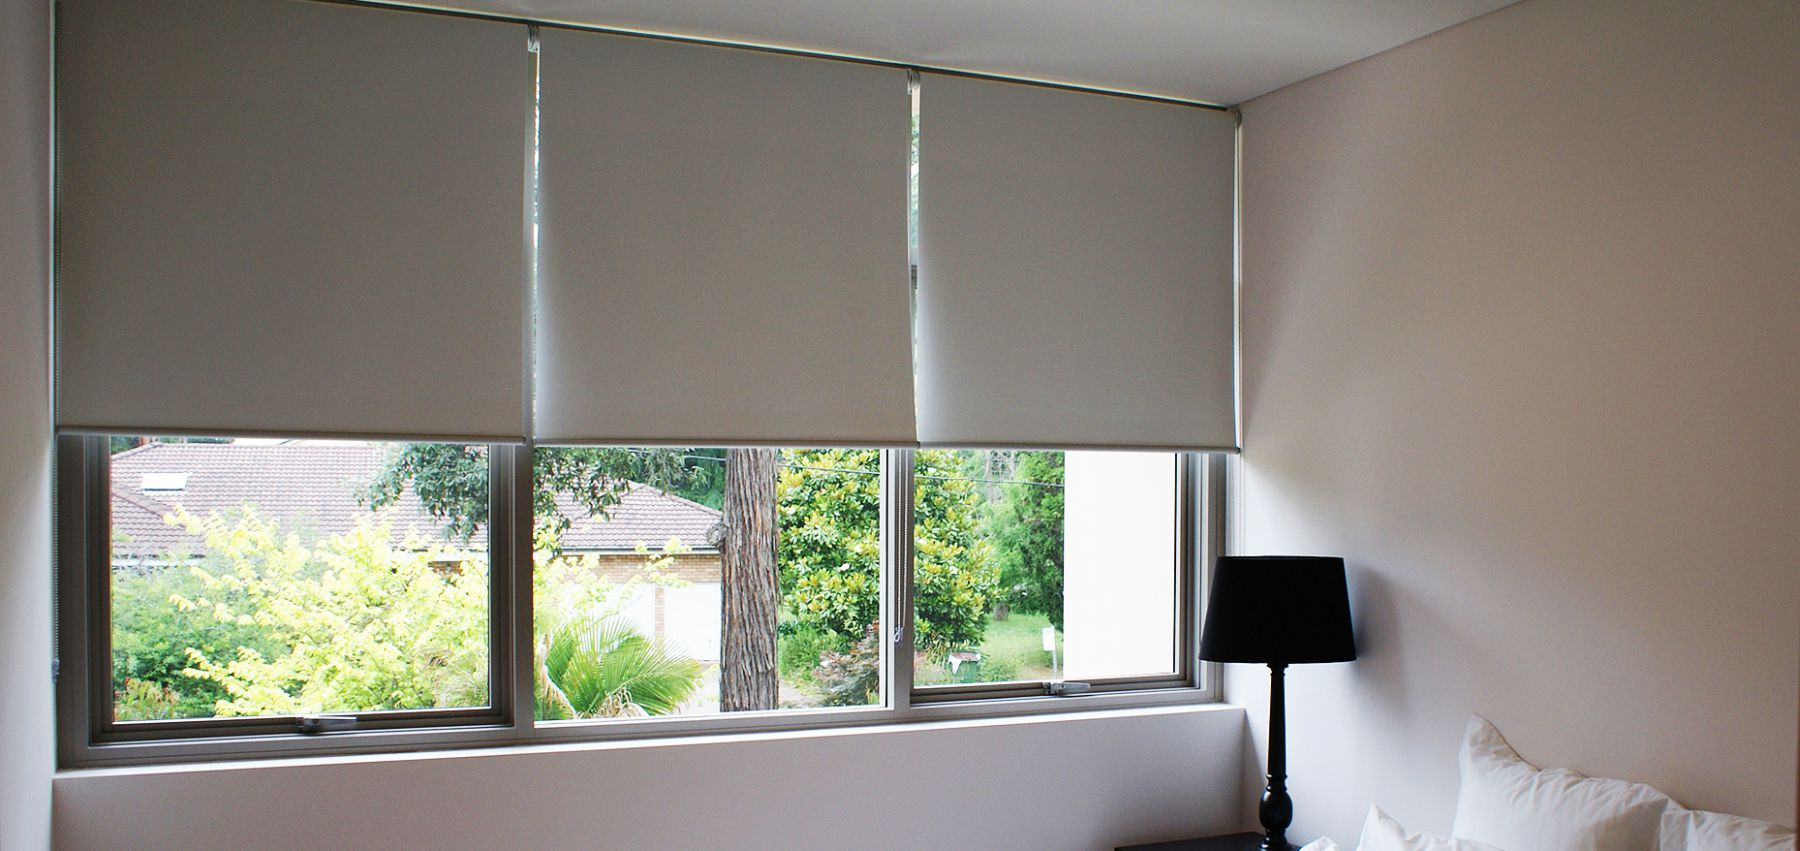 Roller Blinds Office Blinds Block Out Roller Blinds